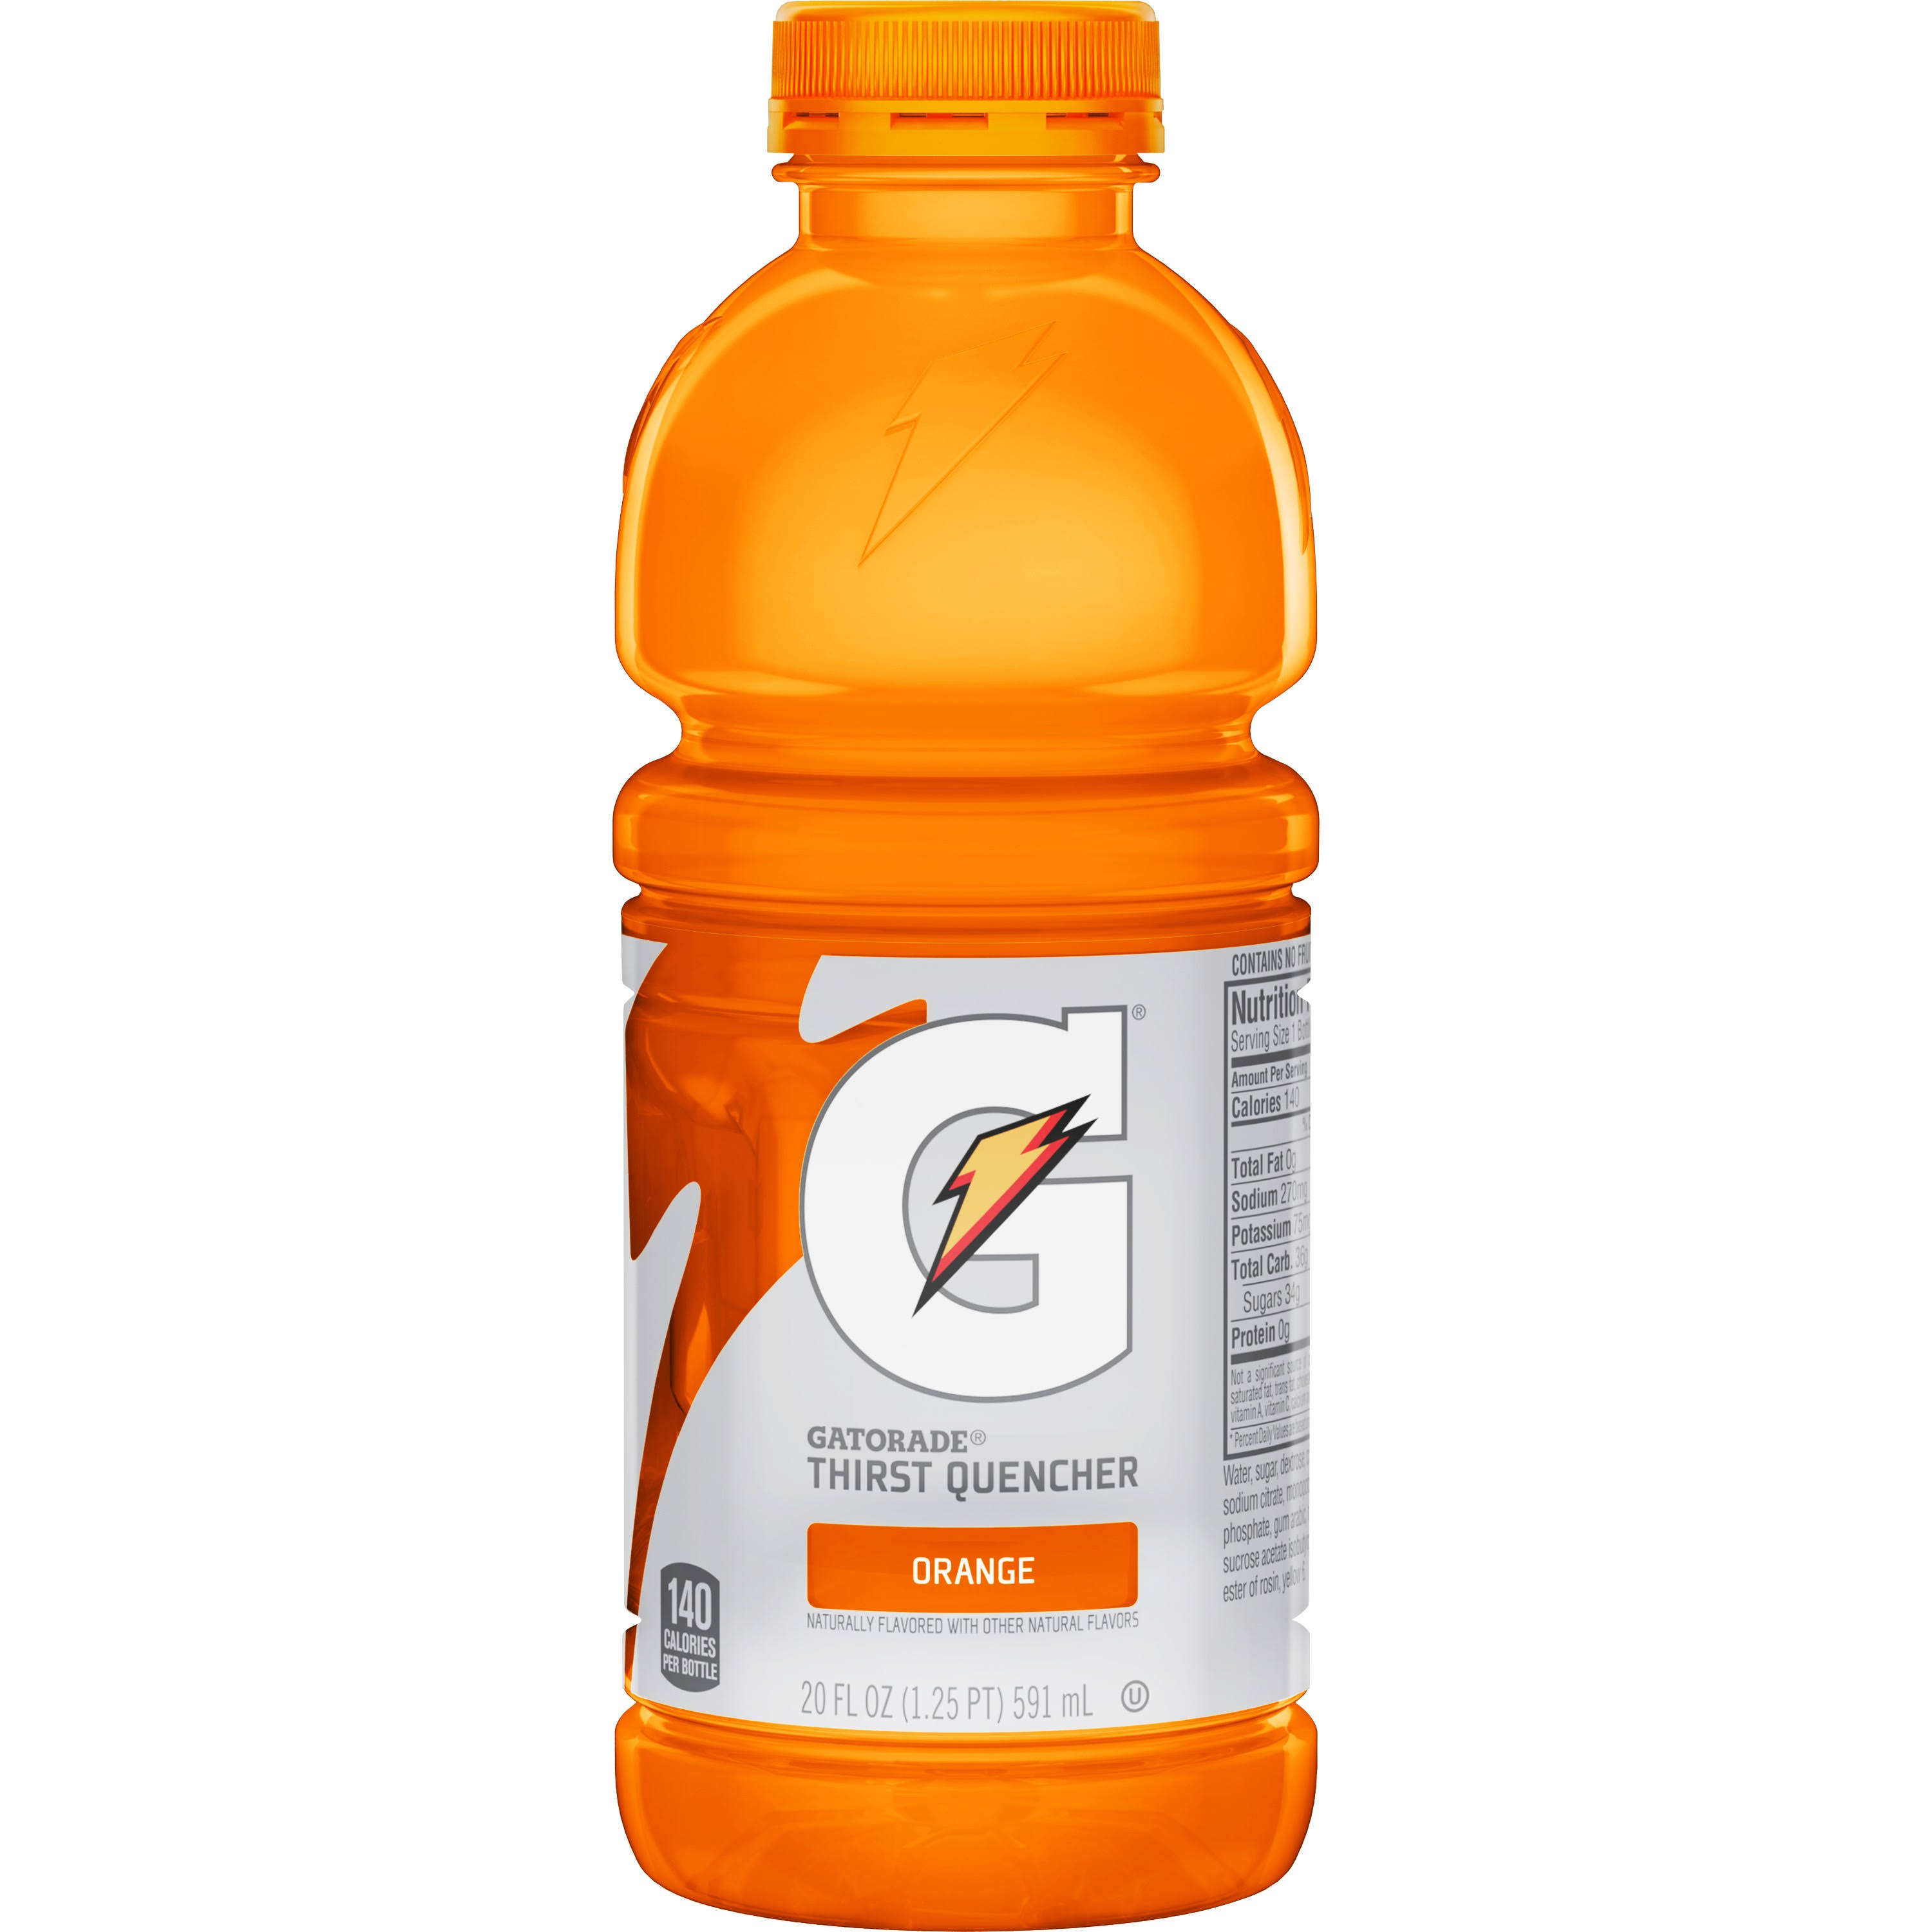 Gatorade - Orange, 590ml